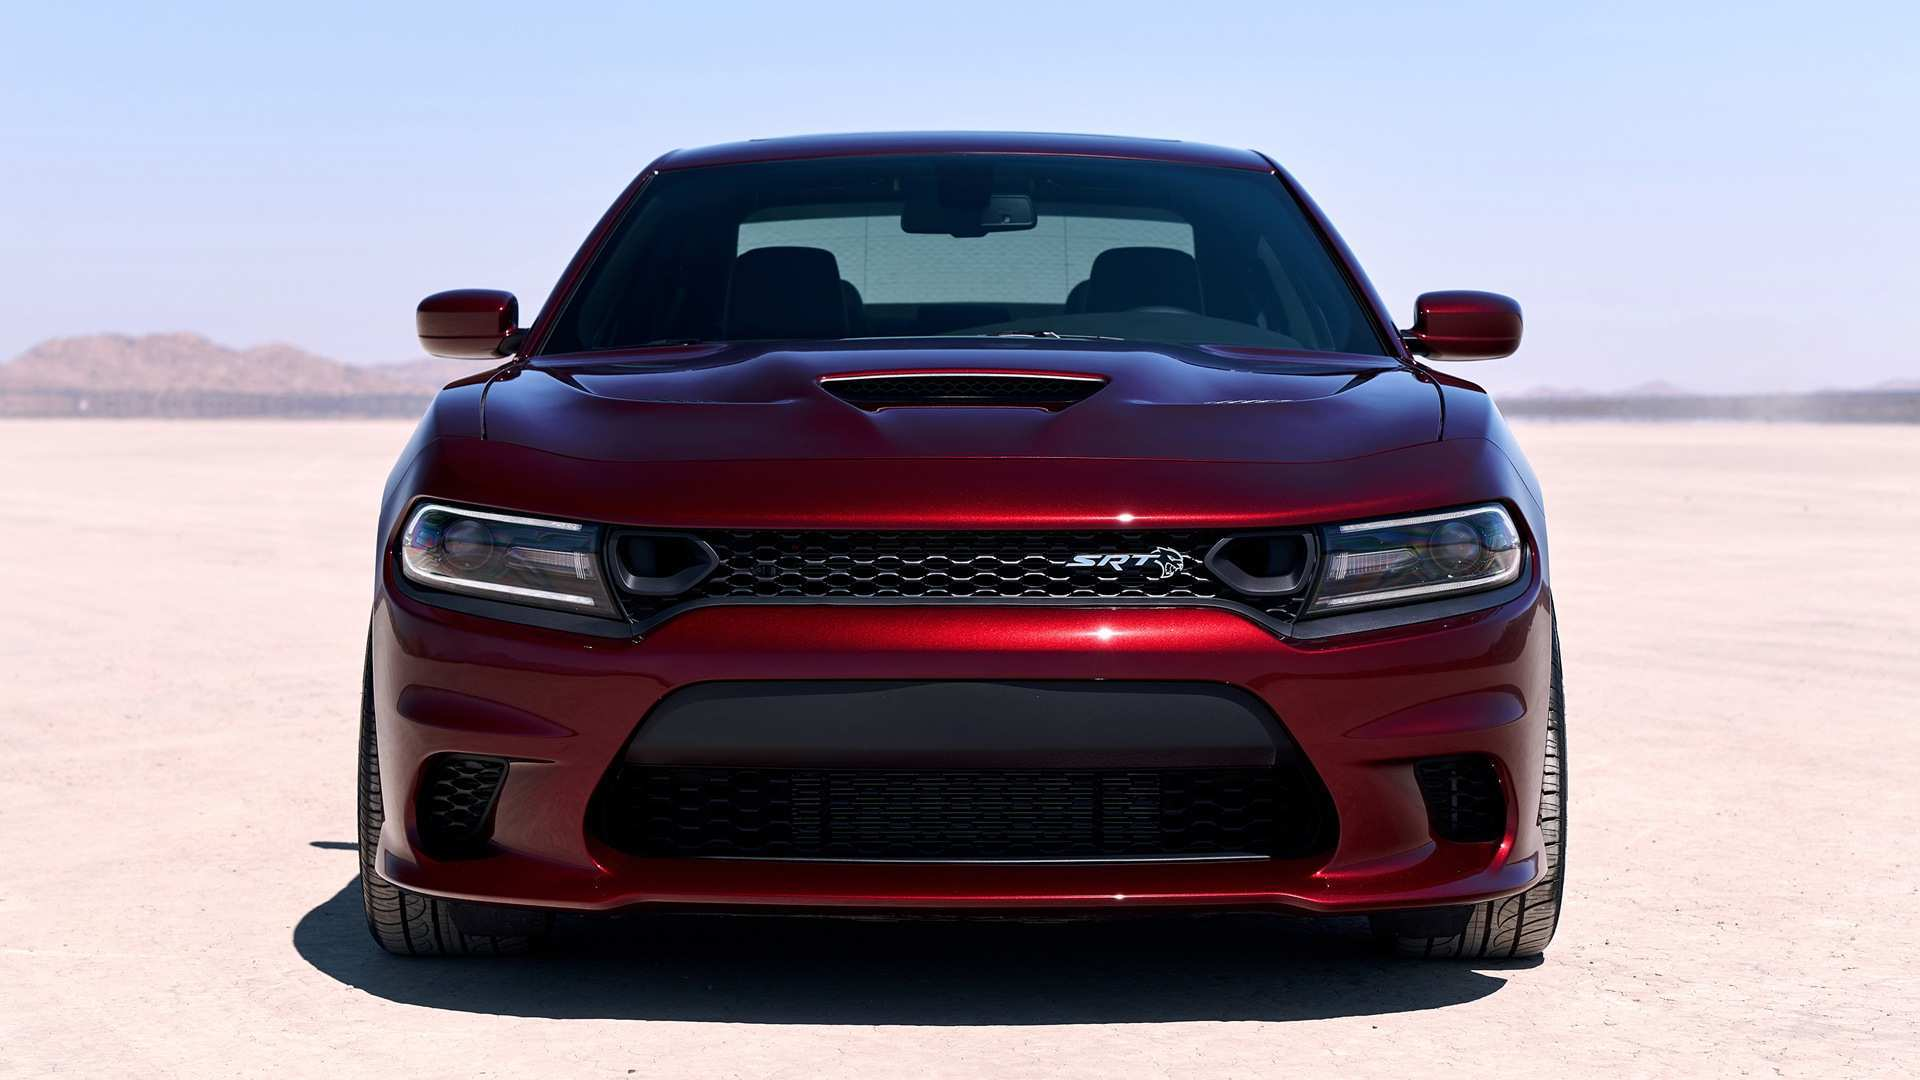 66 All New 2020 Dodge Charger Hellcat Prices